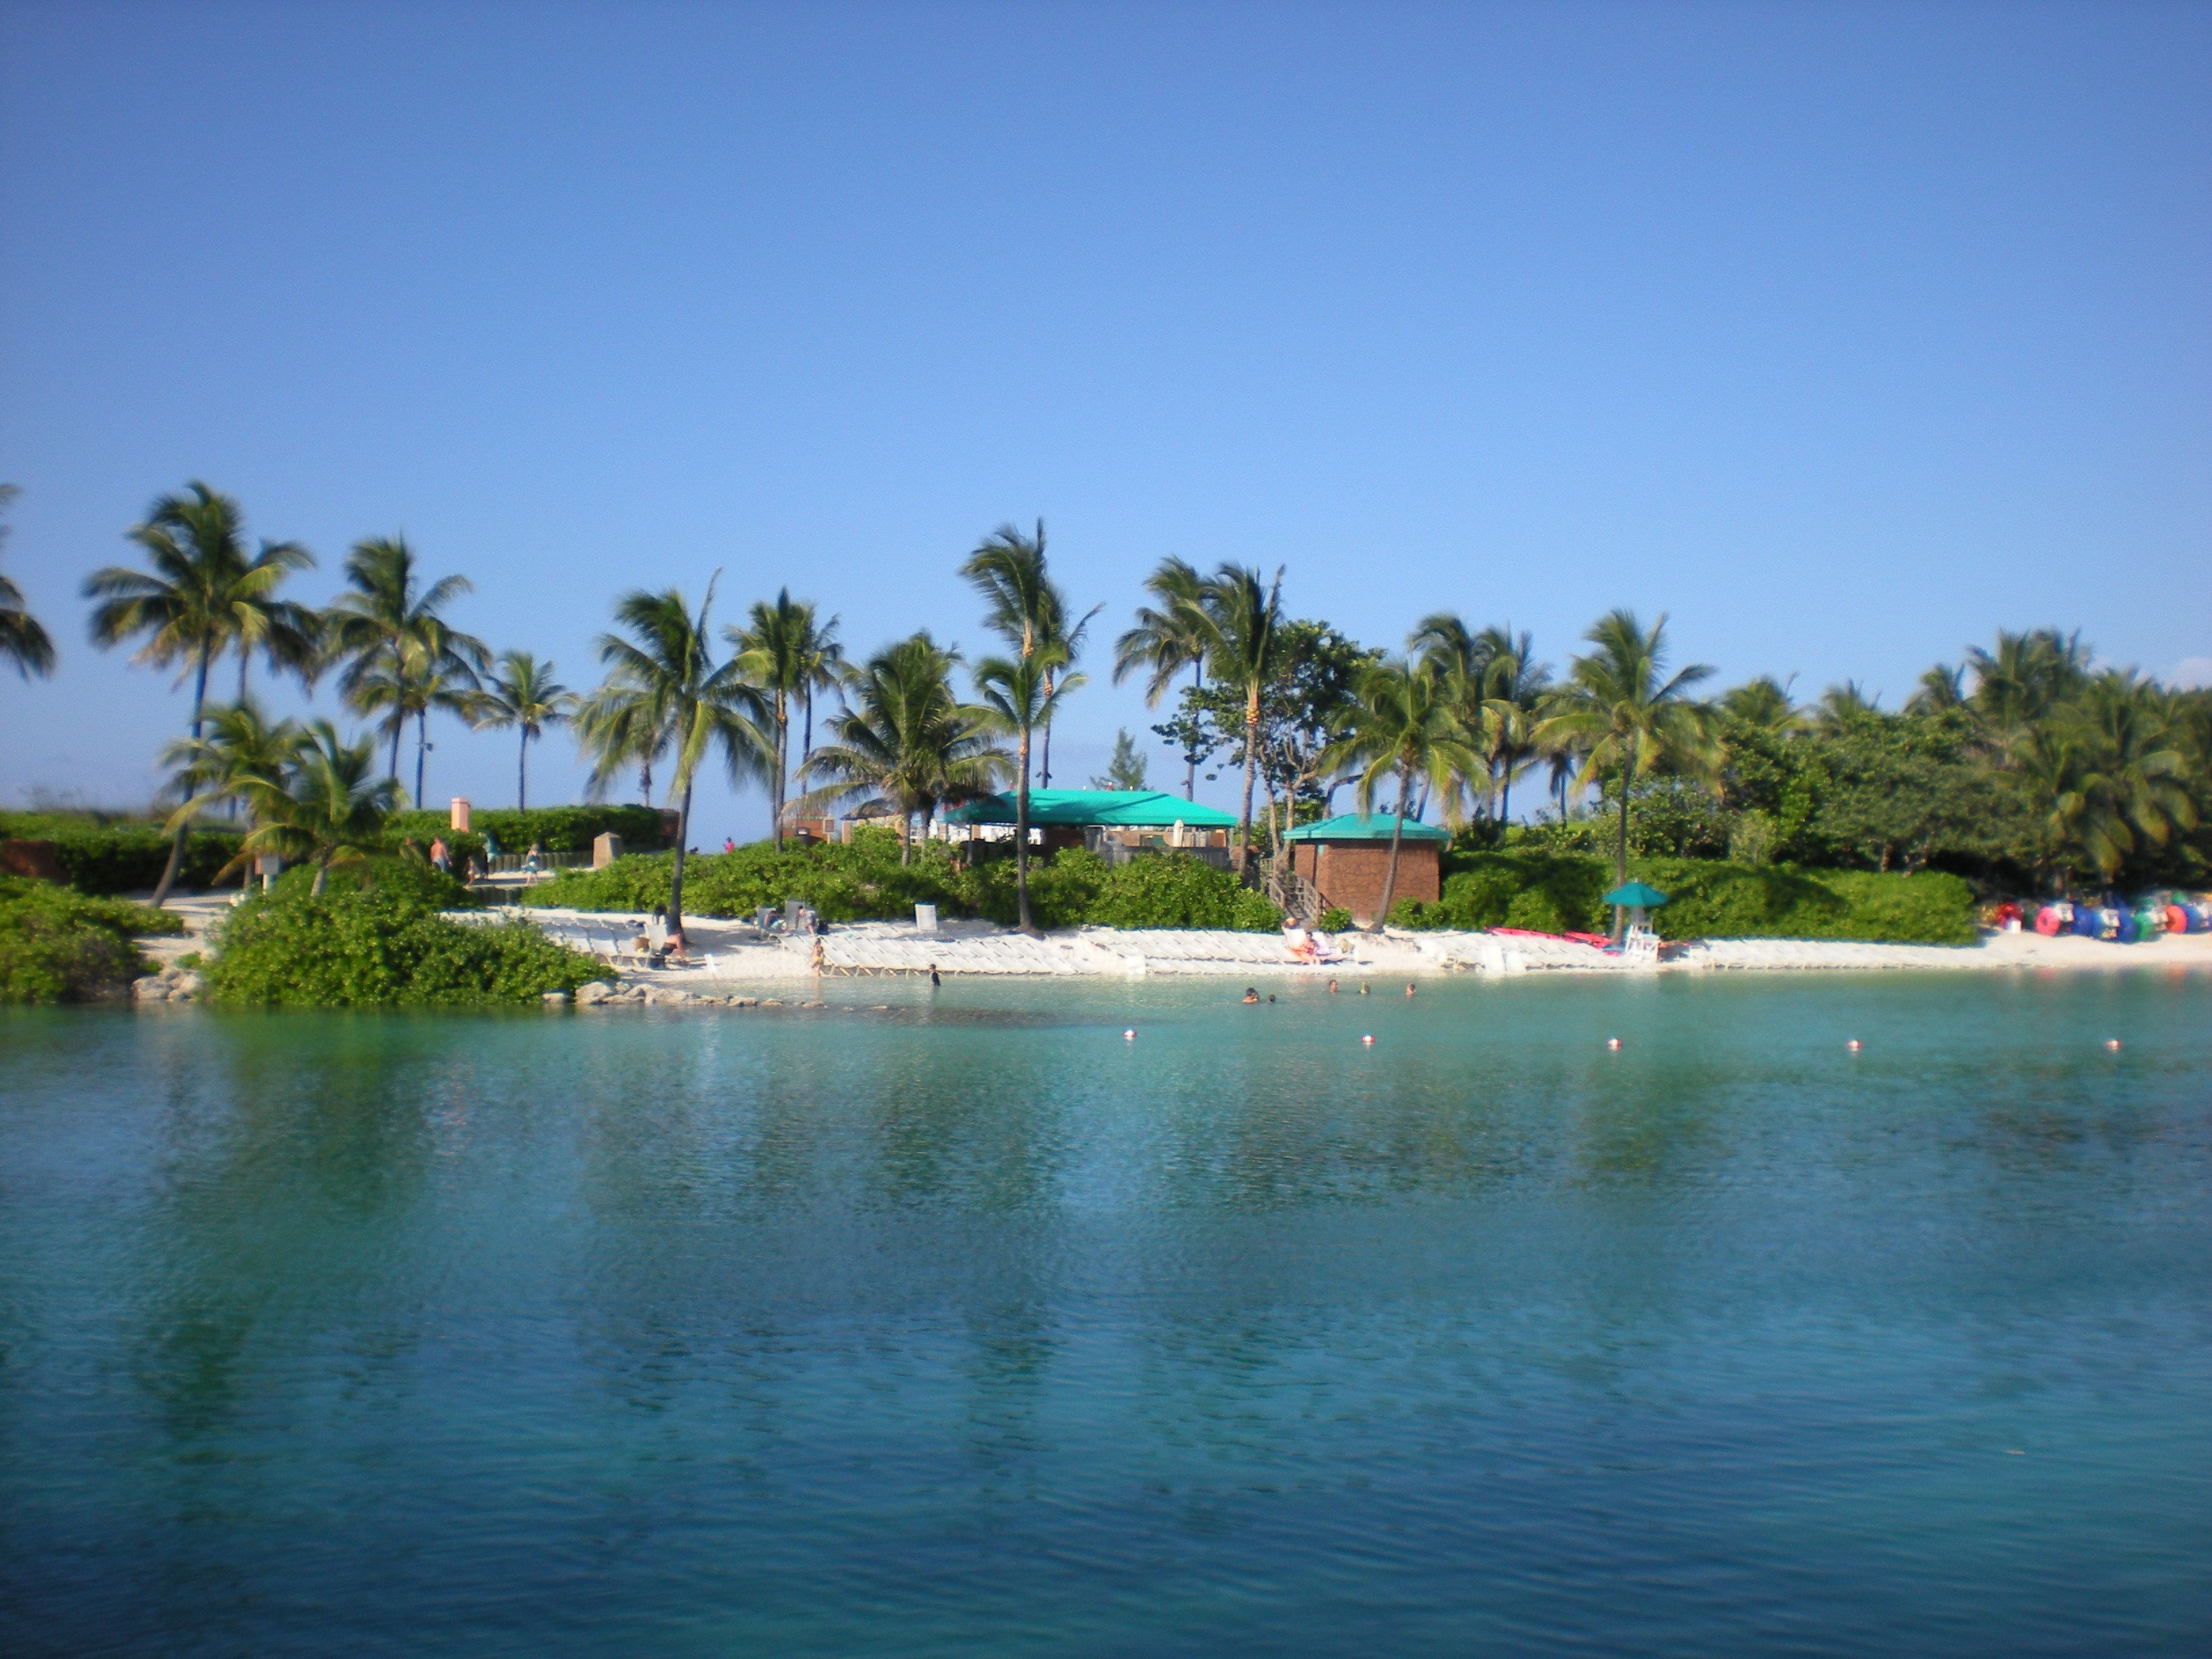 The Bahamas ... a great escape when you need to find a little bit of calm and serenity.